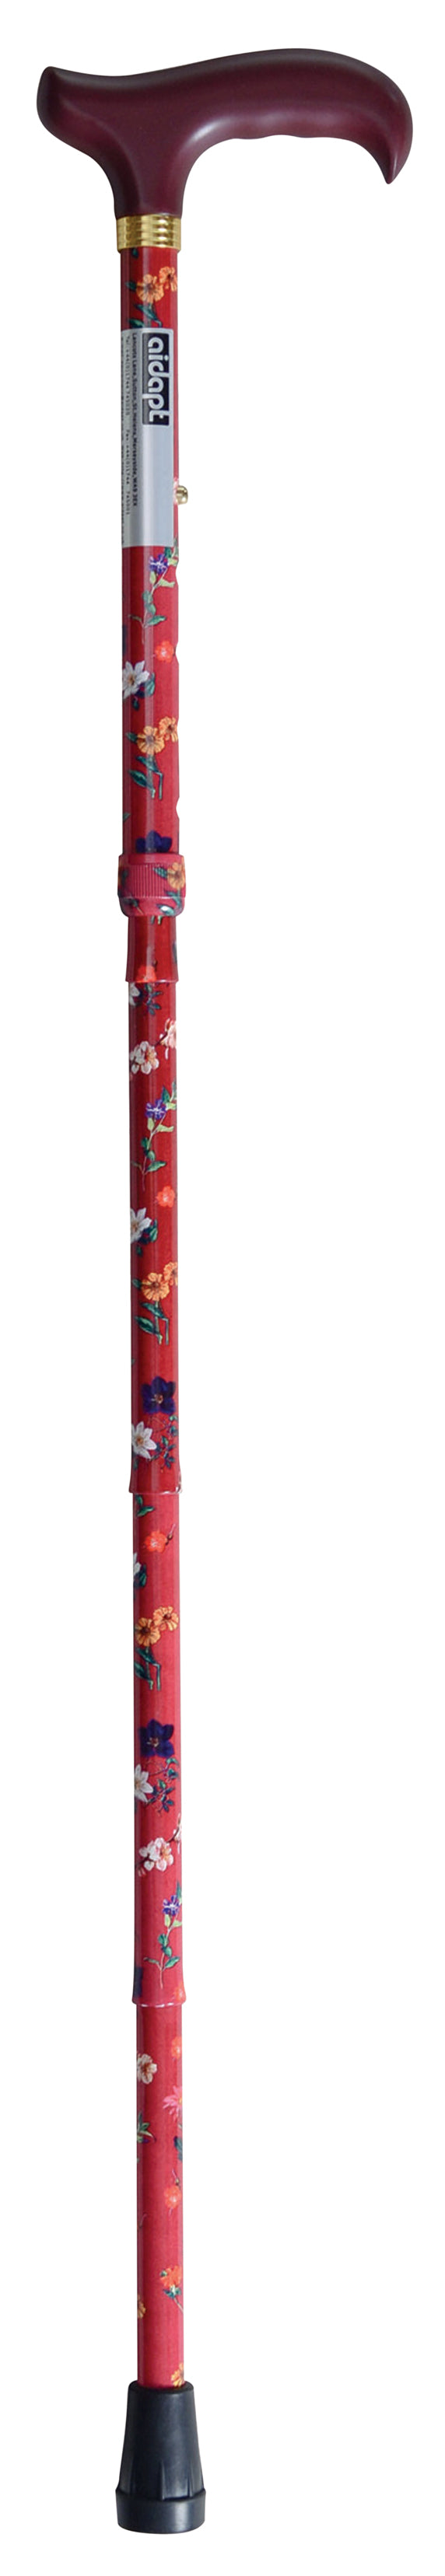 Deluxe Folding Walking Cane Sakura